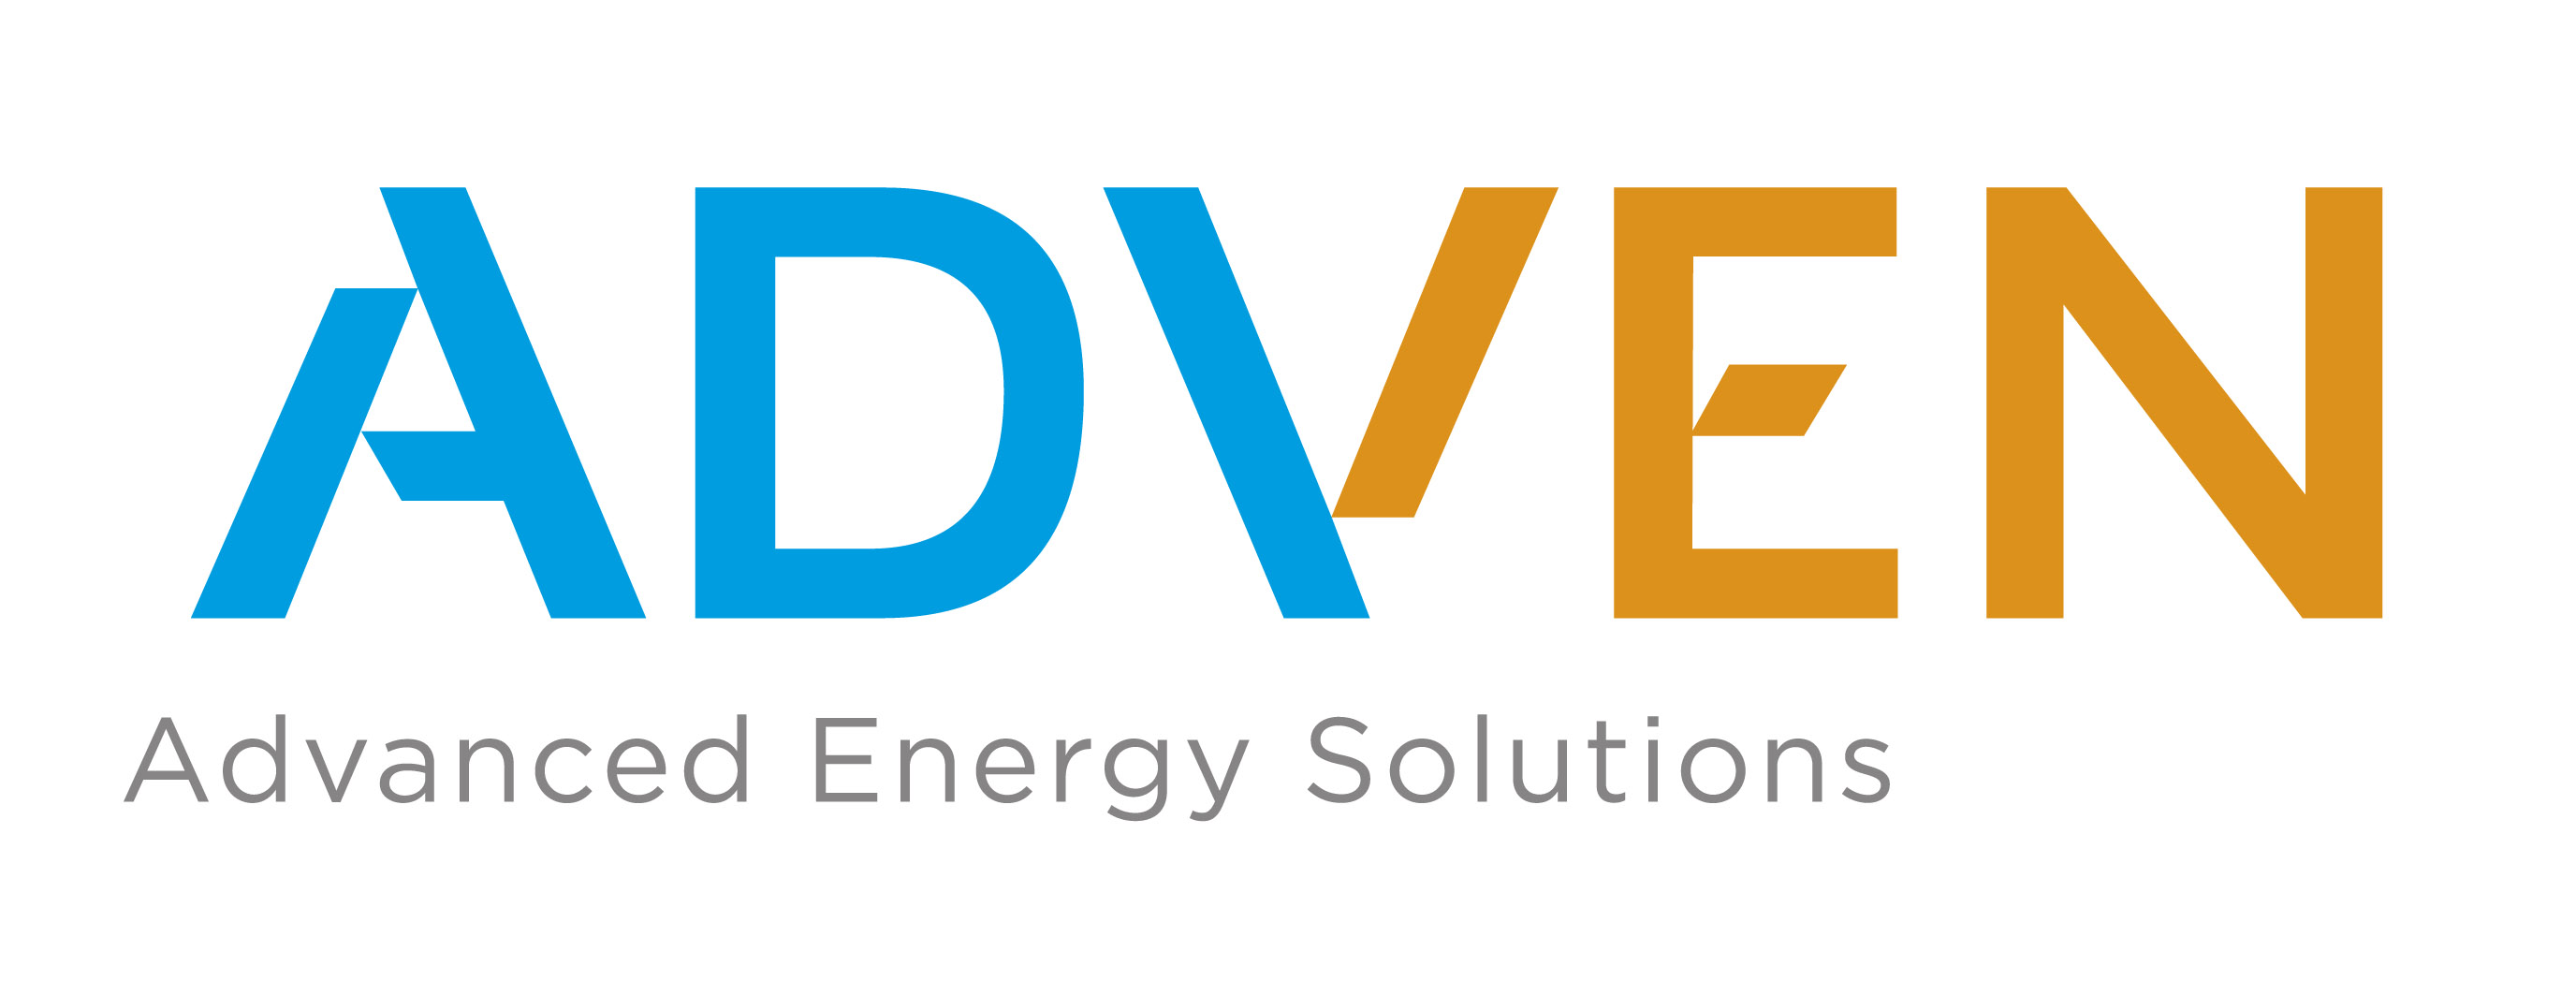 ADVEN_AdvancedEnergySolutions_suoja-alue